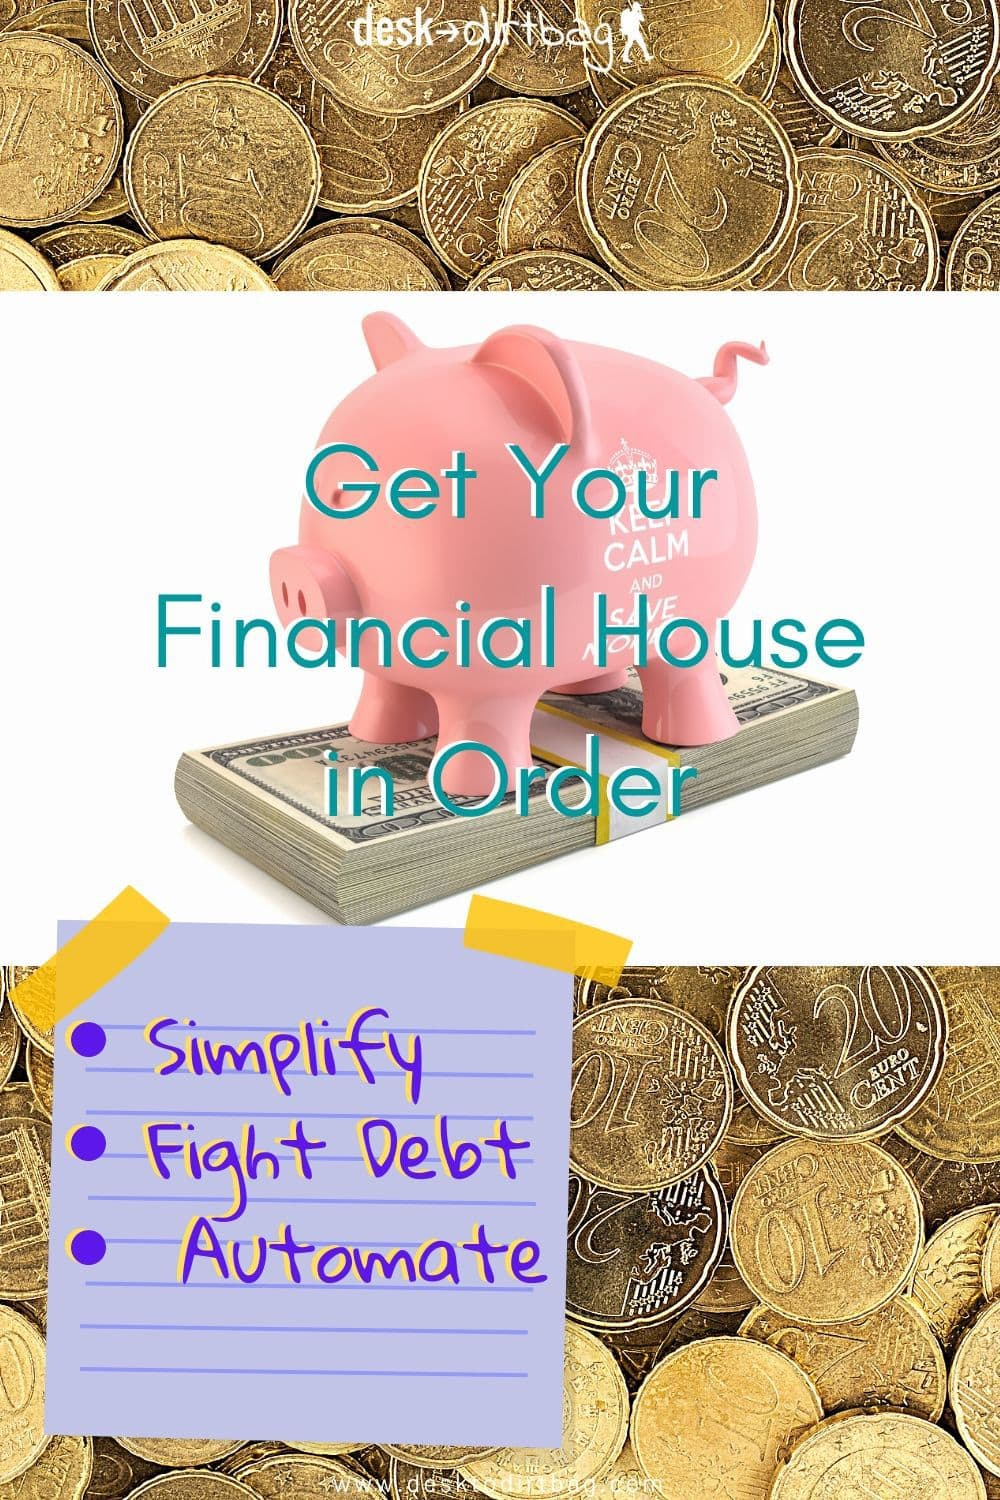 Get Your Financial House in Order - Simplify, Fight Debt, and Automate location-independence, budget-and-finance